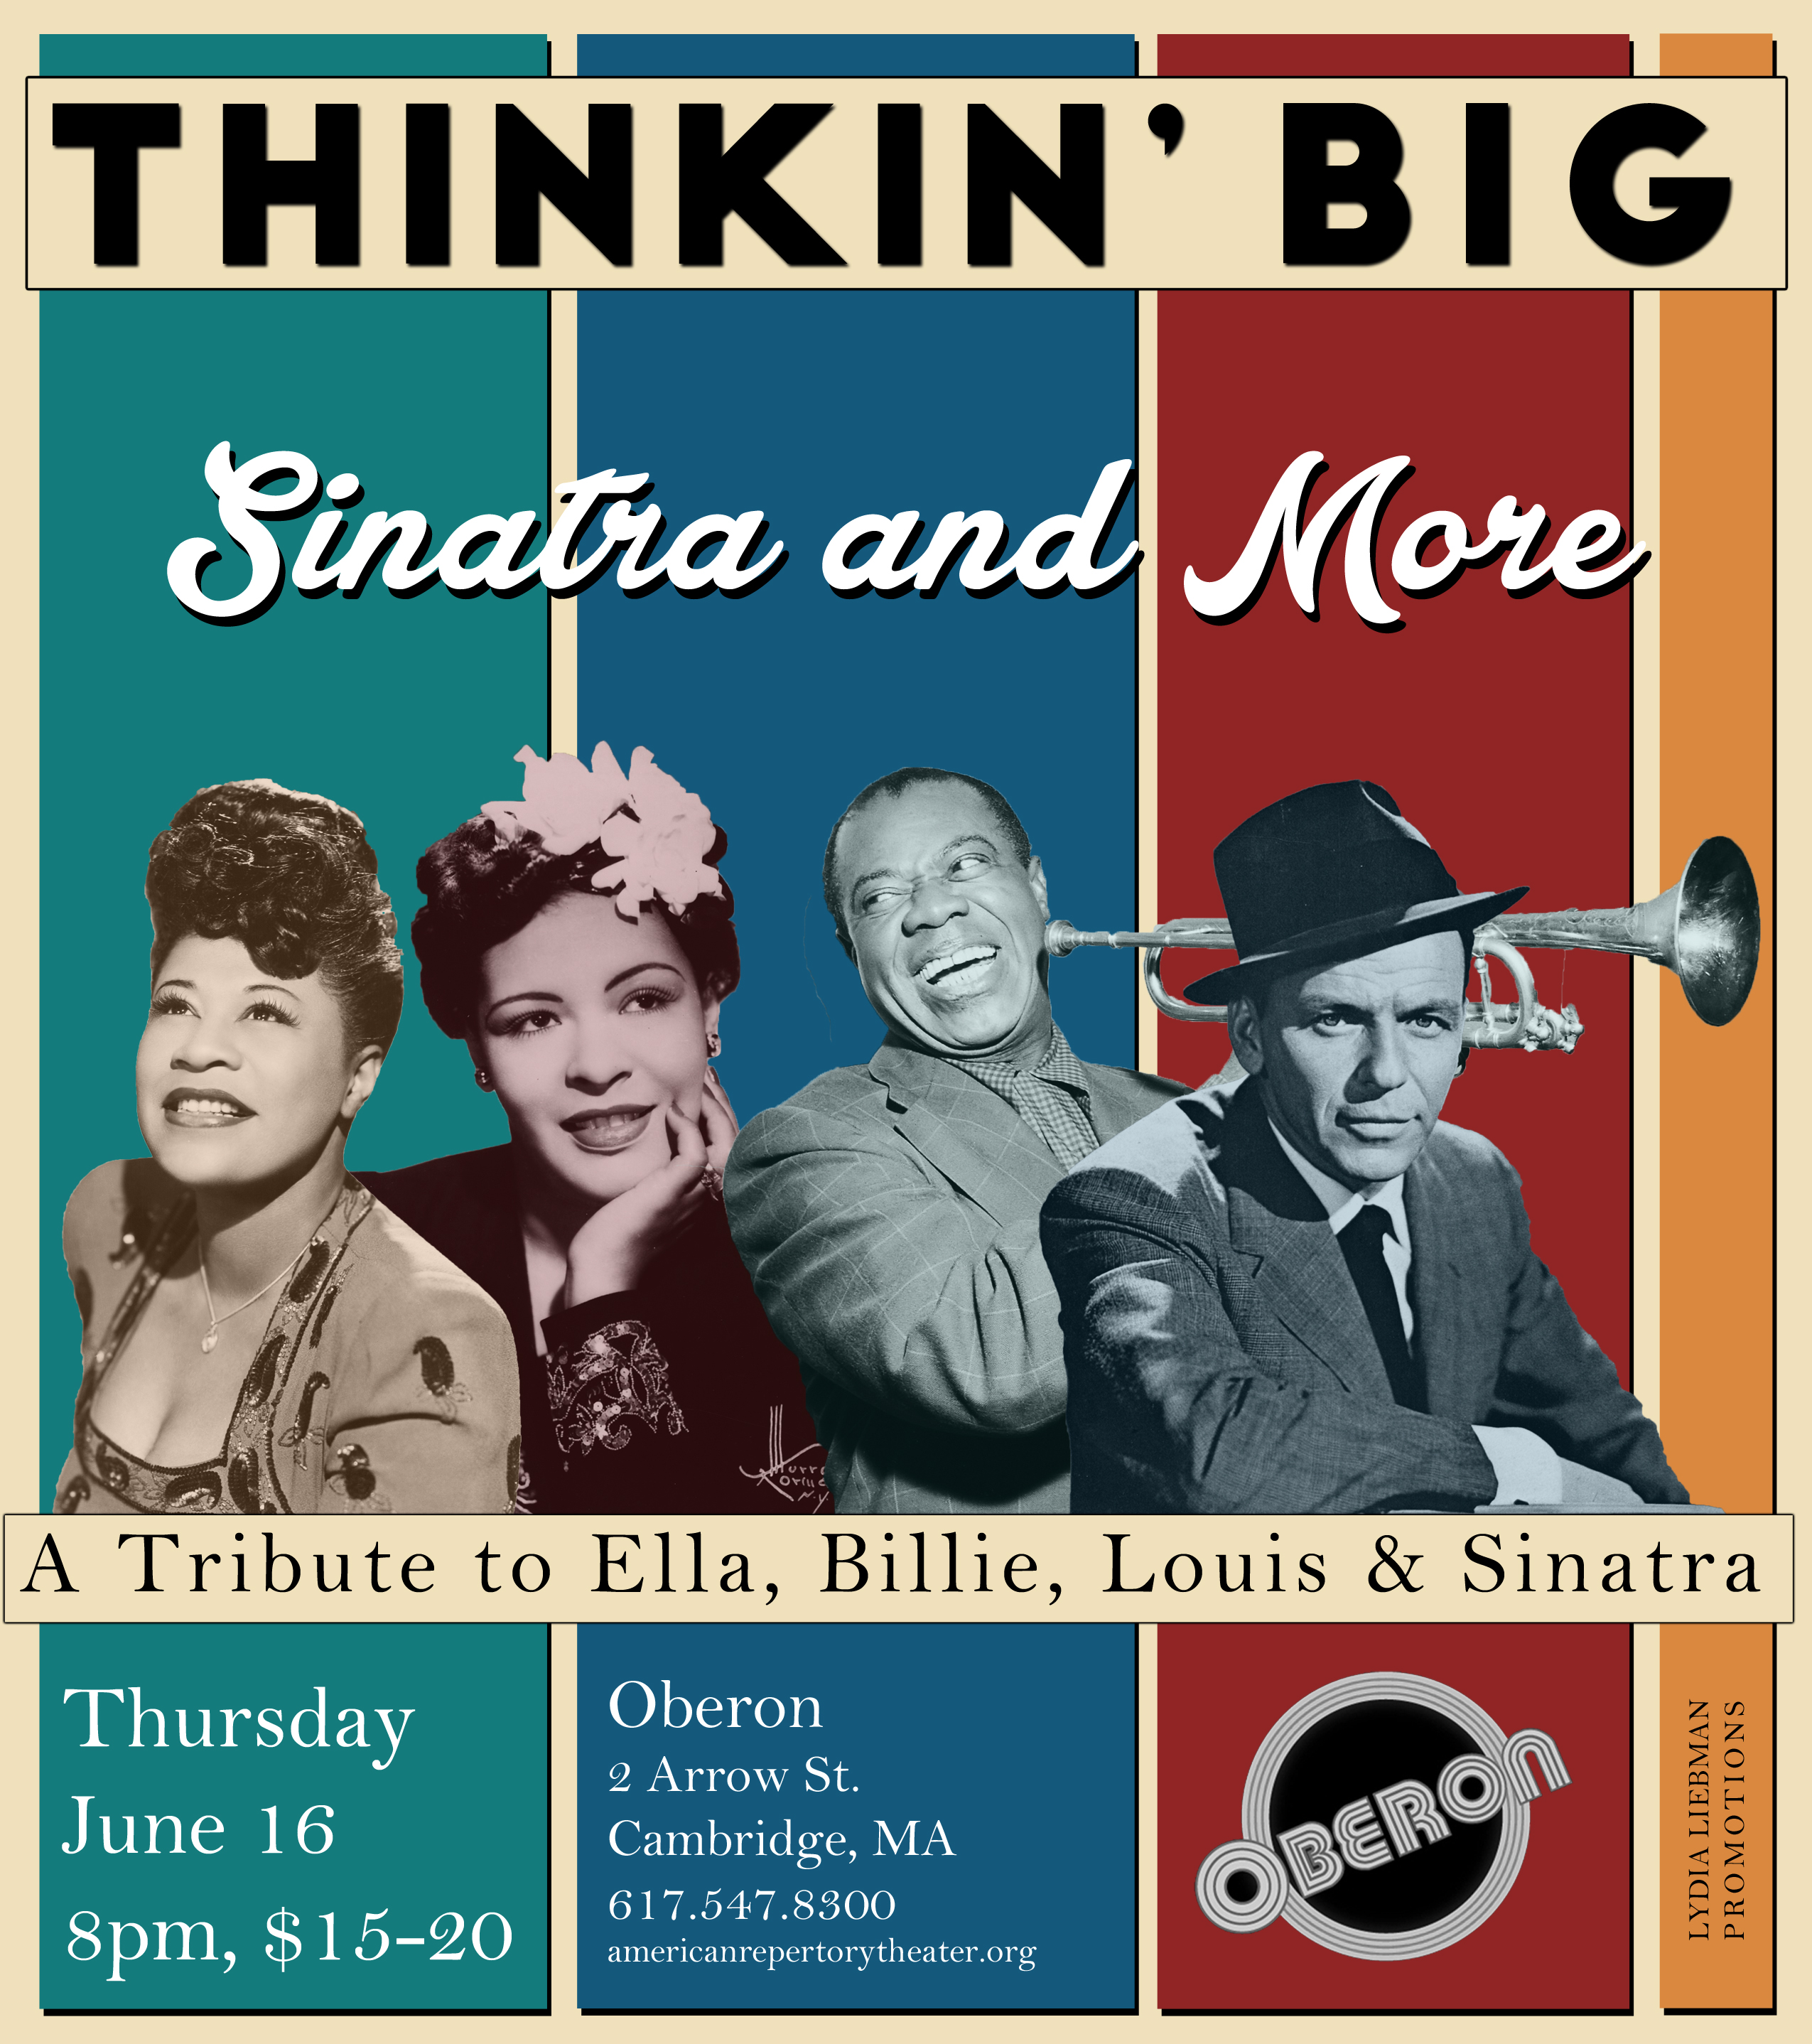 Thinkin' Big Returns to Oberon for Sinatra, Billie, Ella, and Louis Tribute!